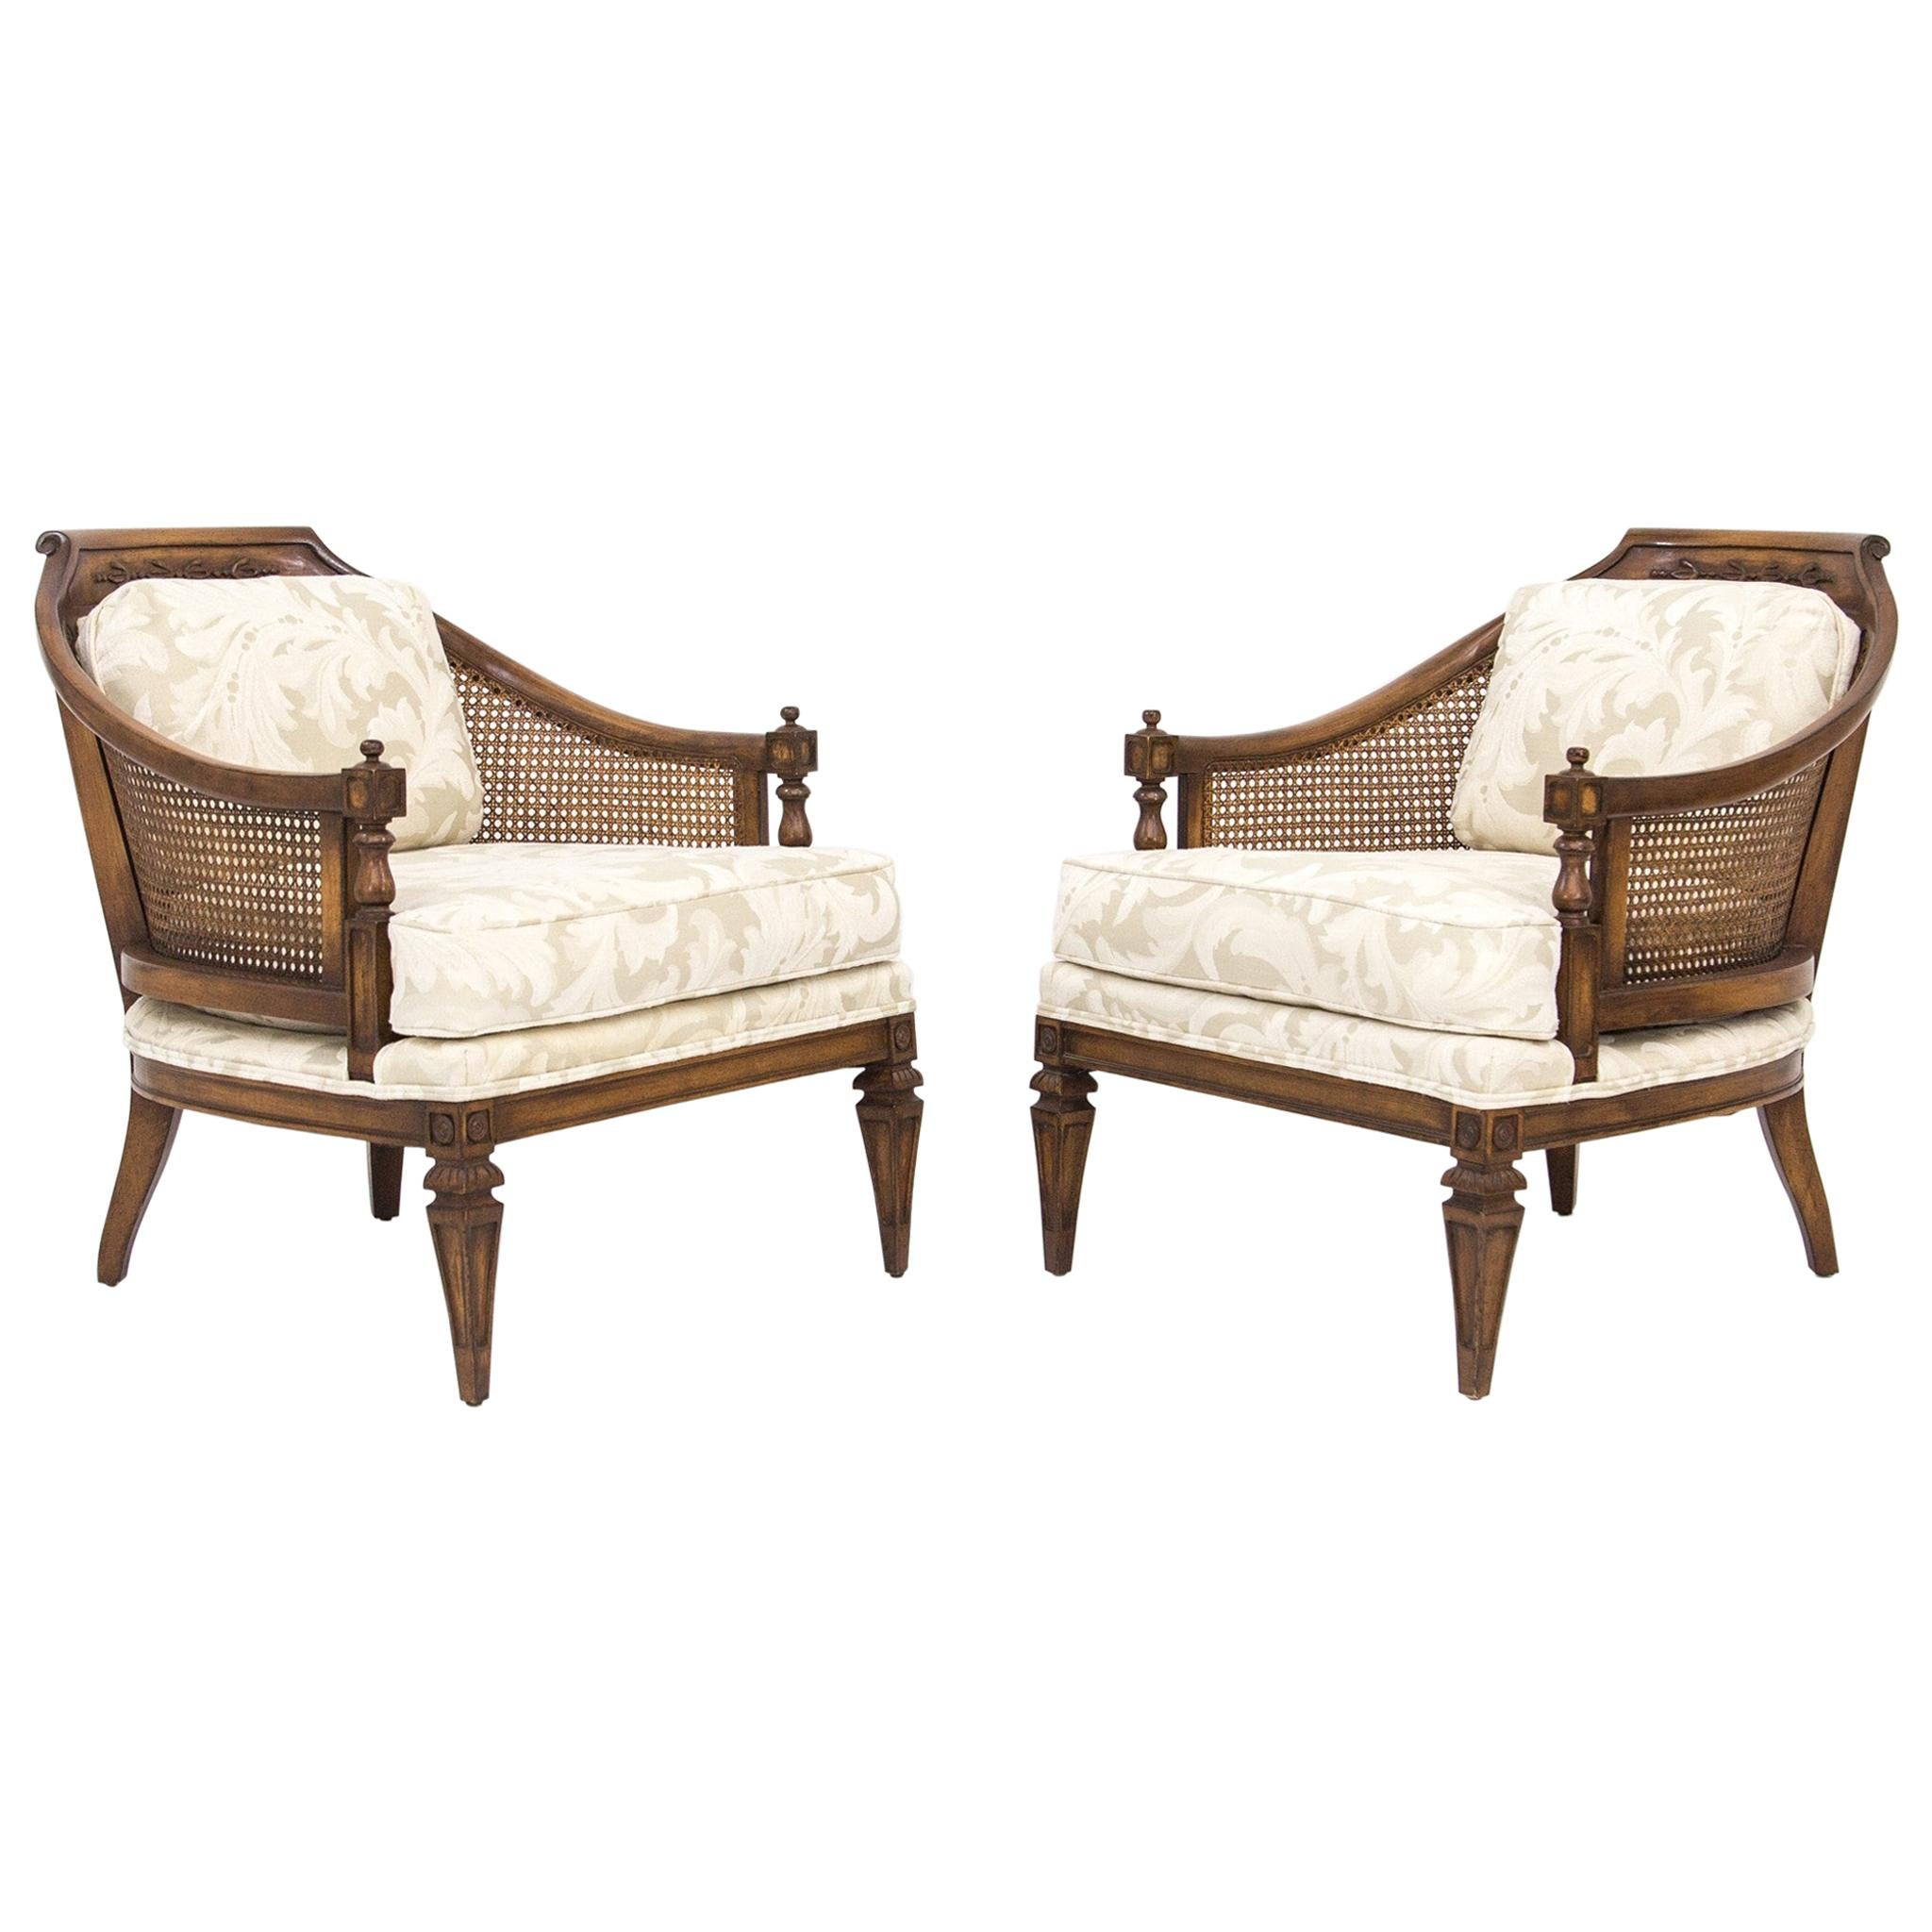 Pair of Mid-Century Walnut & Cane Barrel Back Club Chairs with White Upholstery